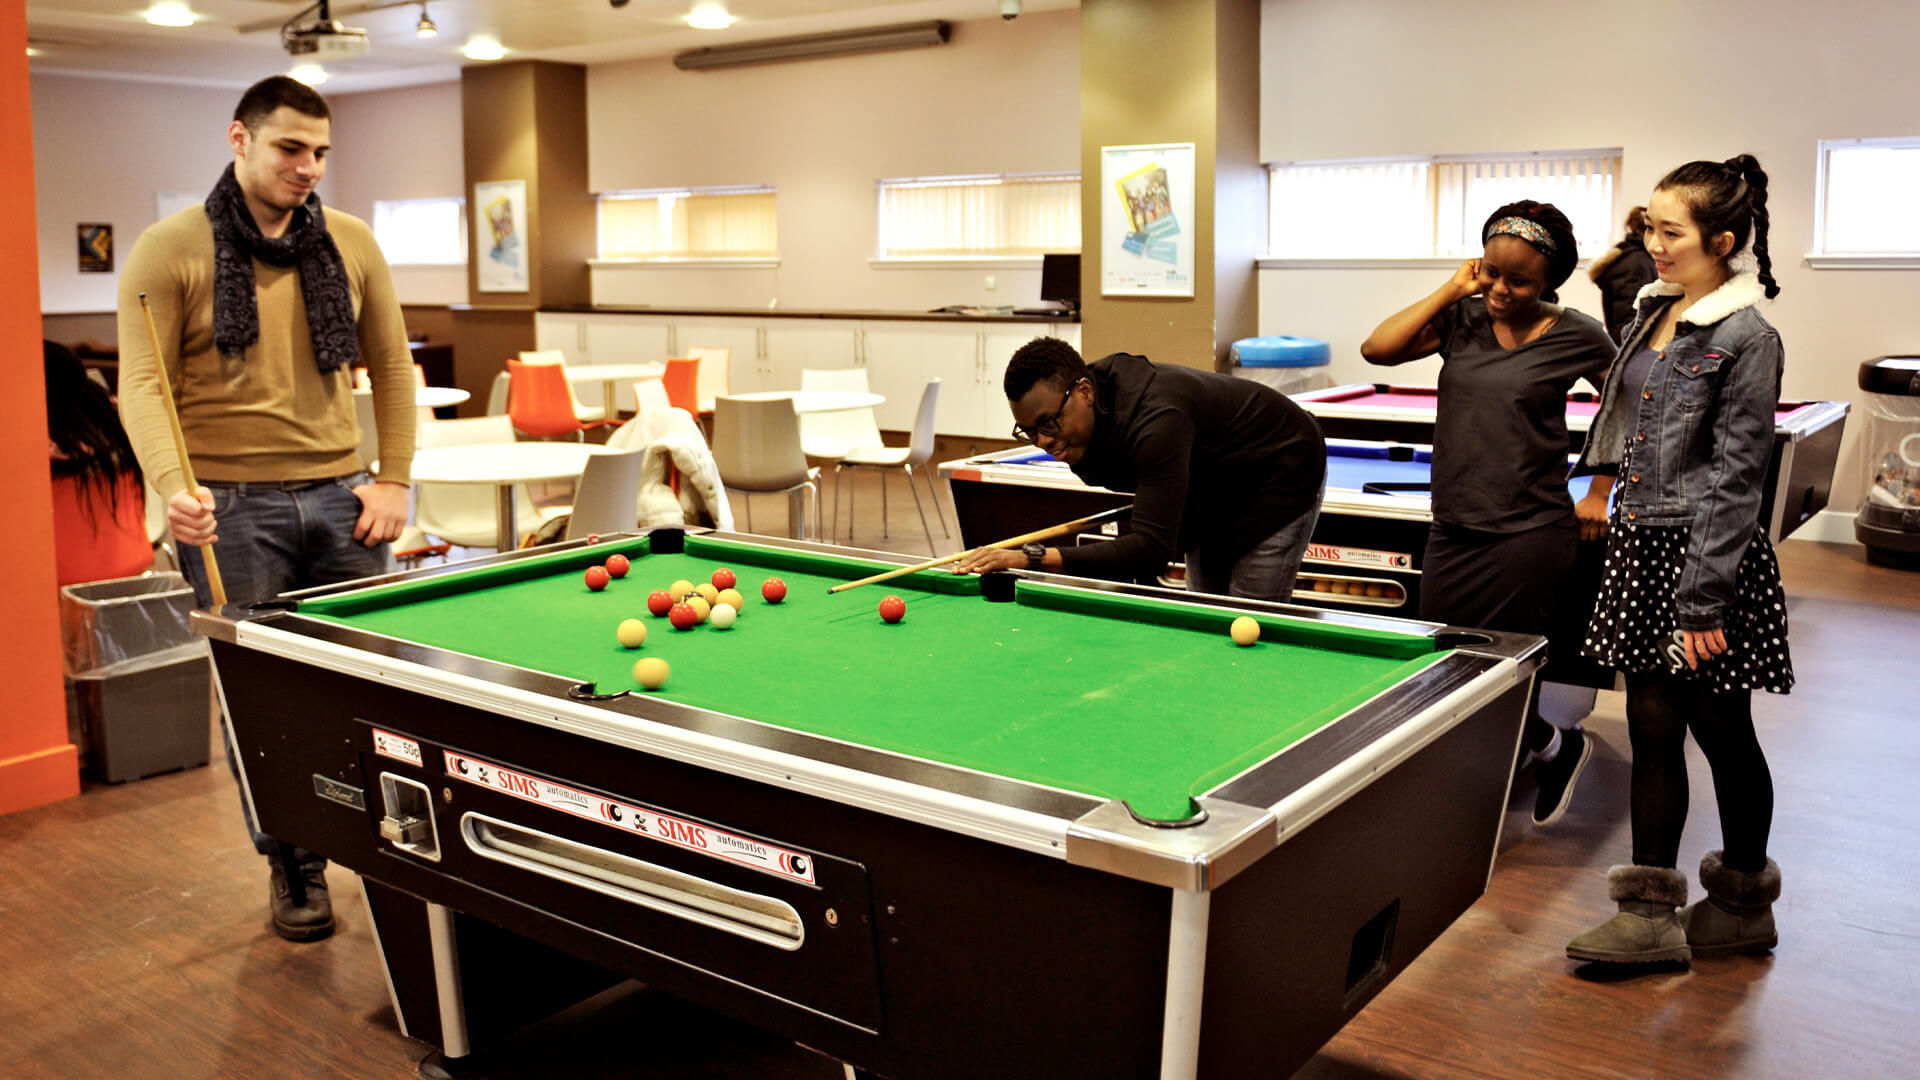 Students socialising and playing pool at Glasgow Caledonian University